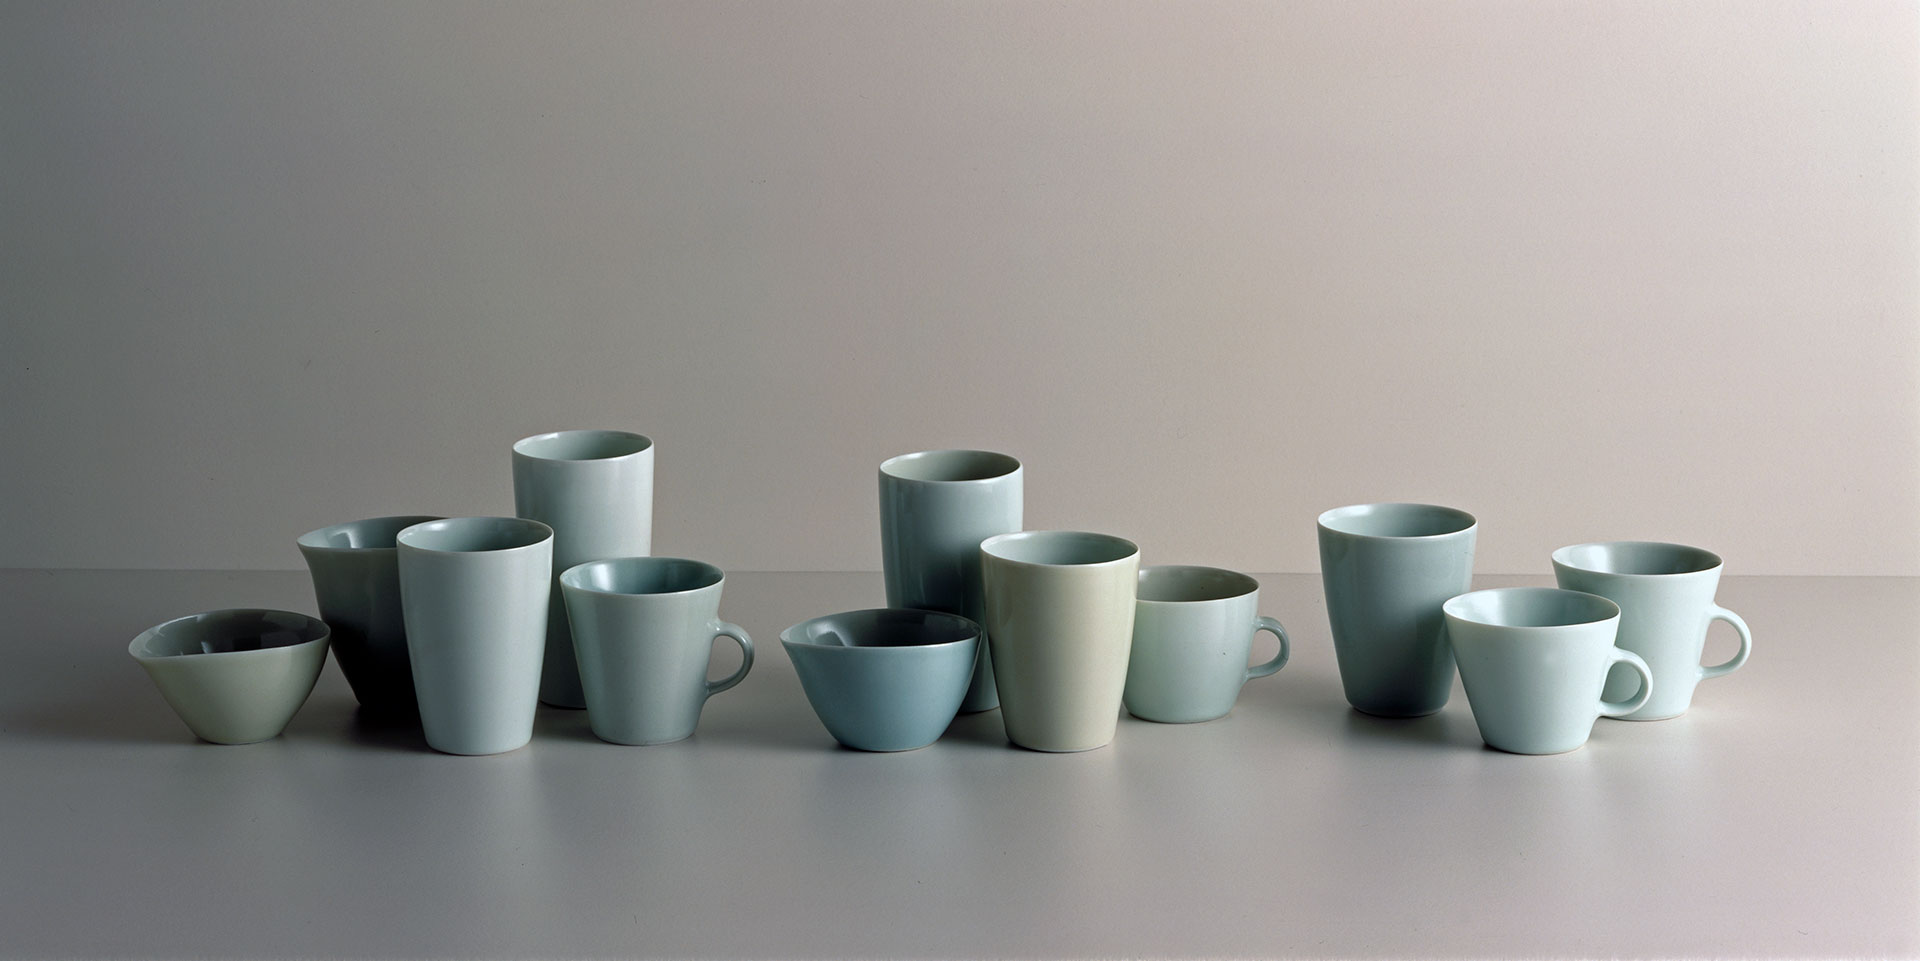 Gwyn Hanssen Pigott 'Pale suite with cups' 2001 | twelve glazed, wood fired porcelain vessels, wheel thrown | QUT Art Collection | Purchased 2001